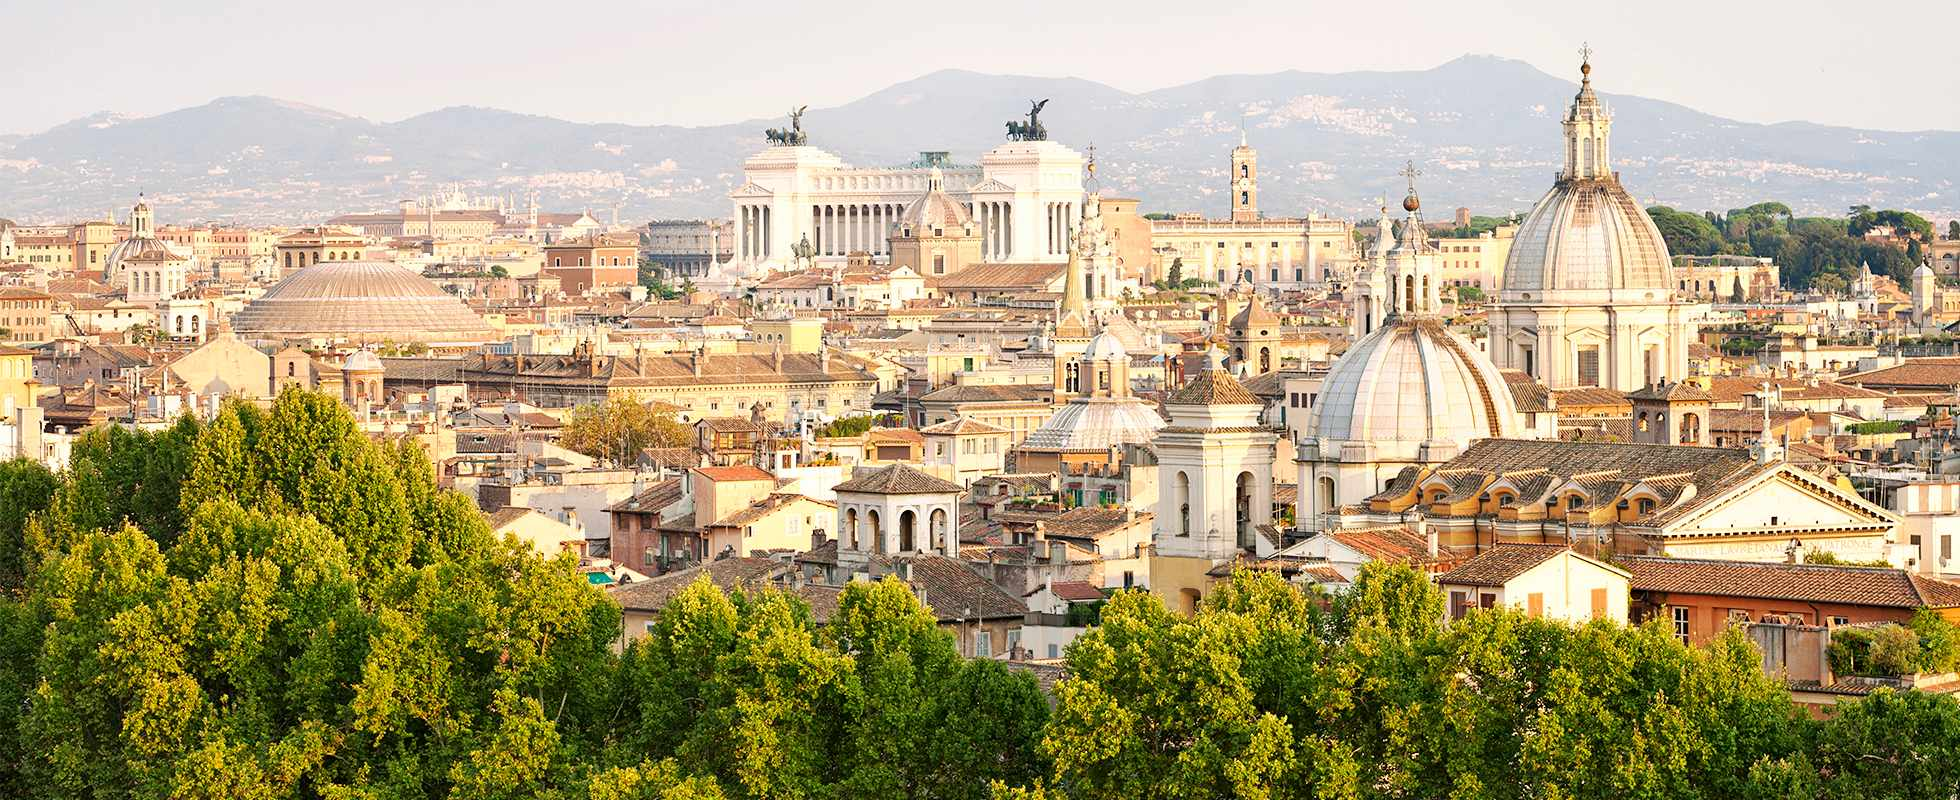 City view of Rome